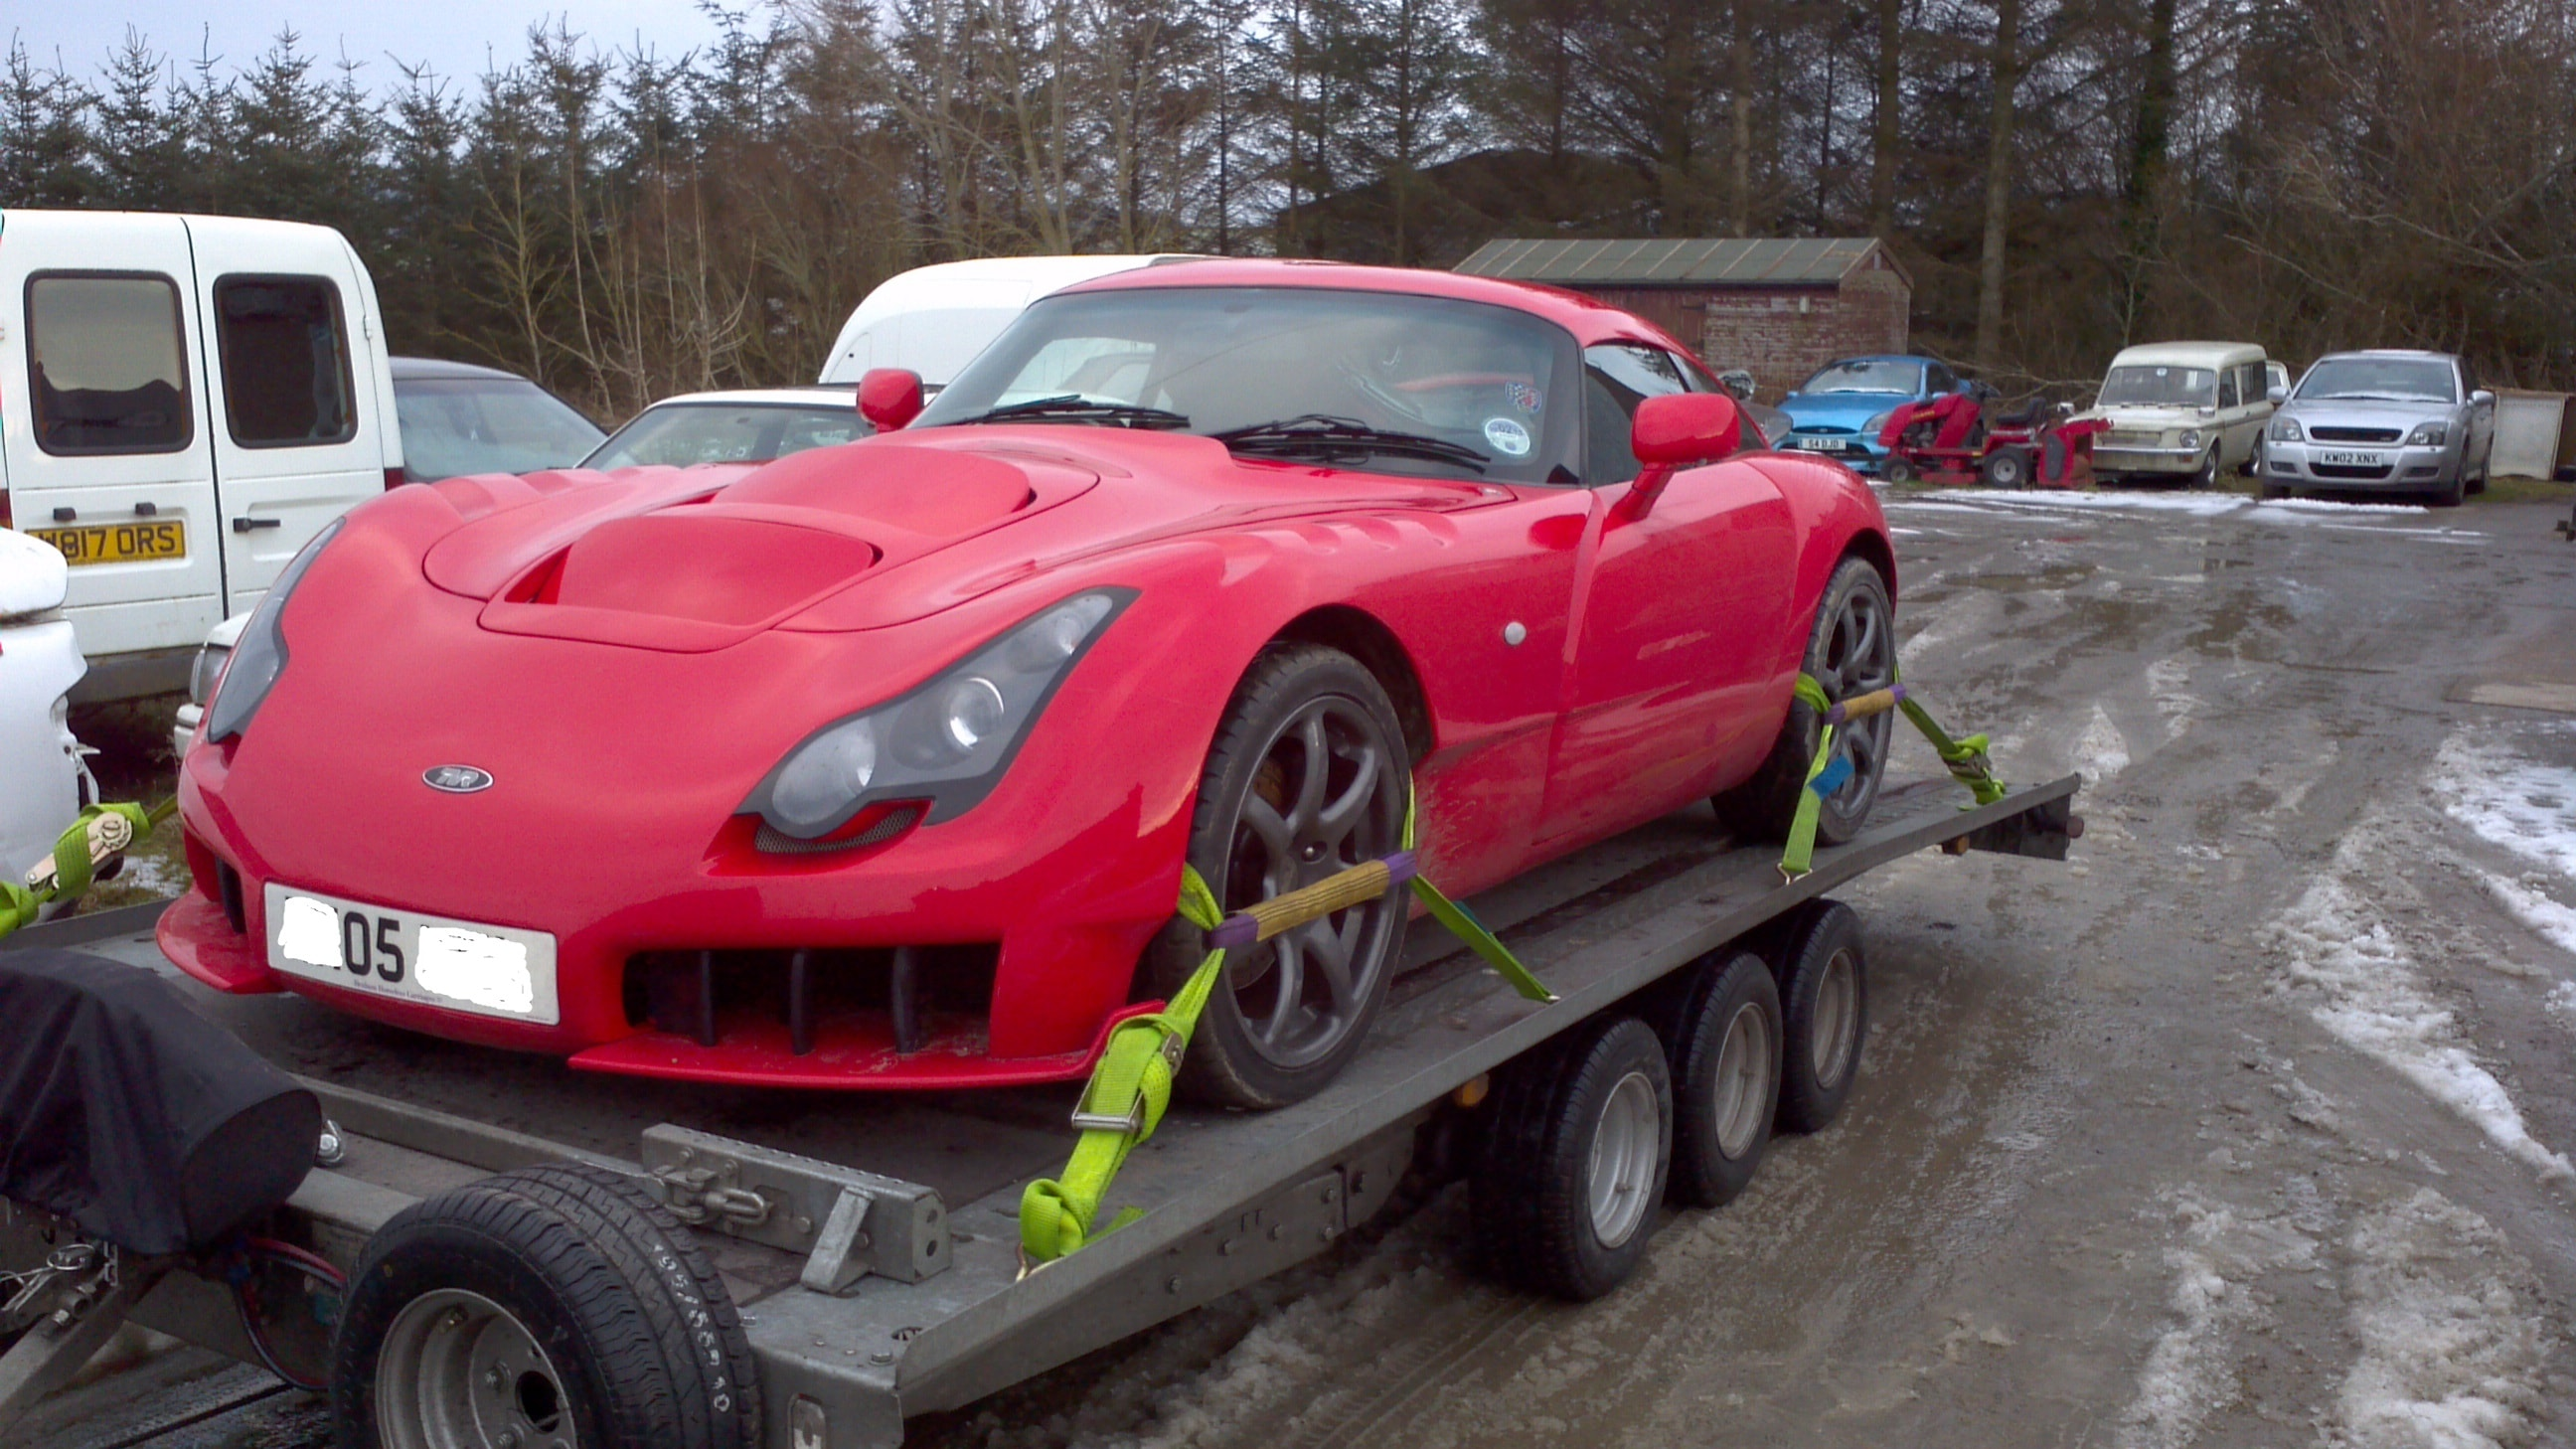 2005 TVR Sagaris Widescreen for desktop